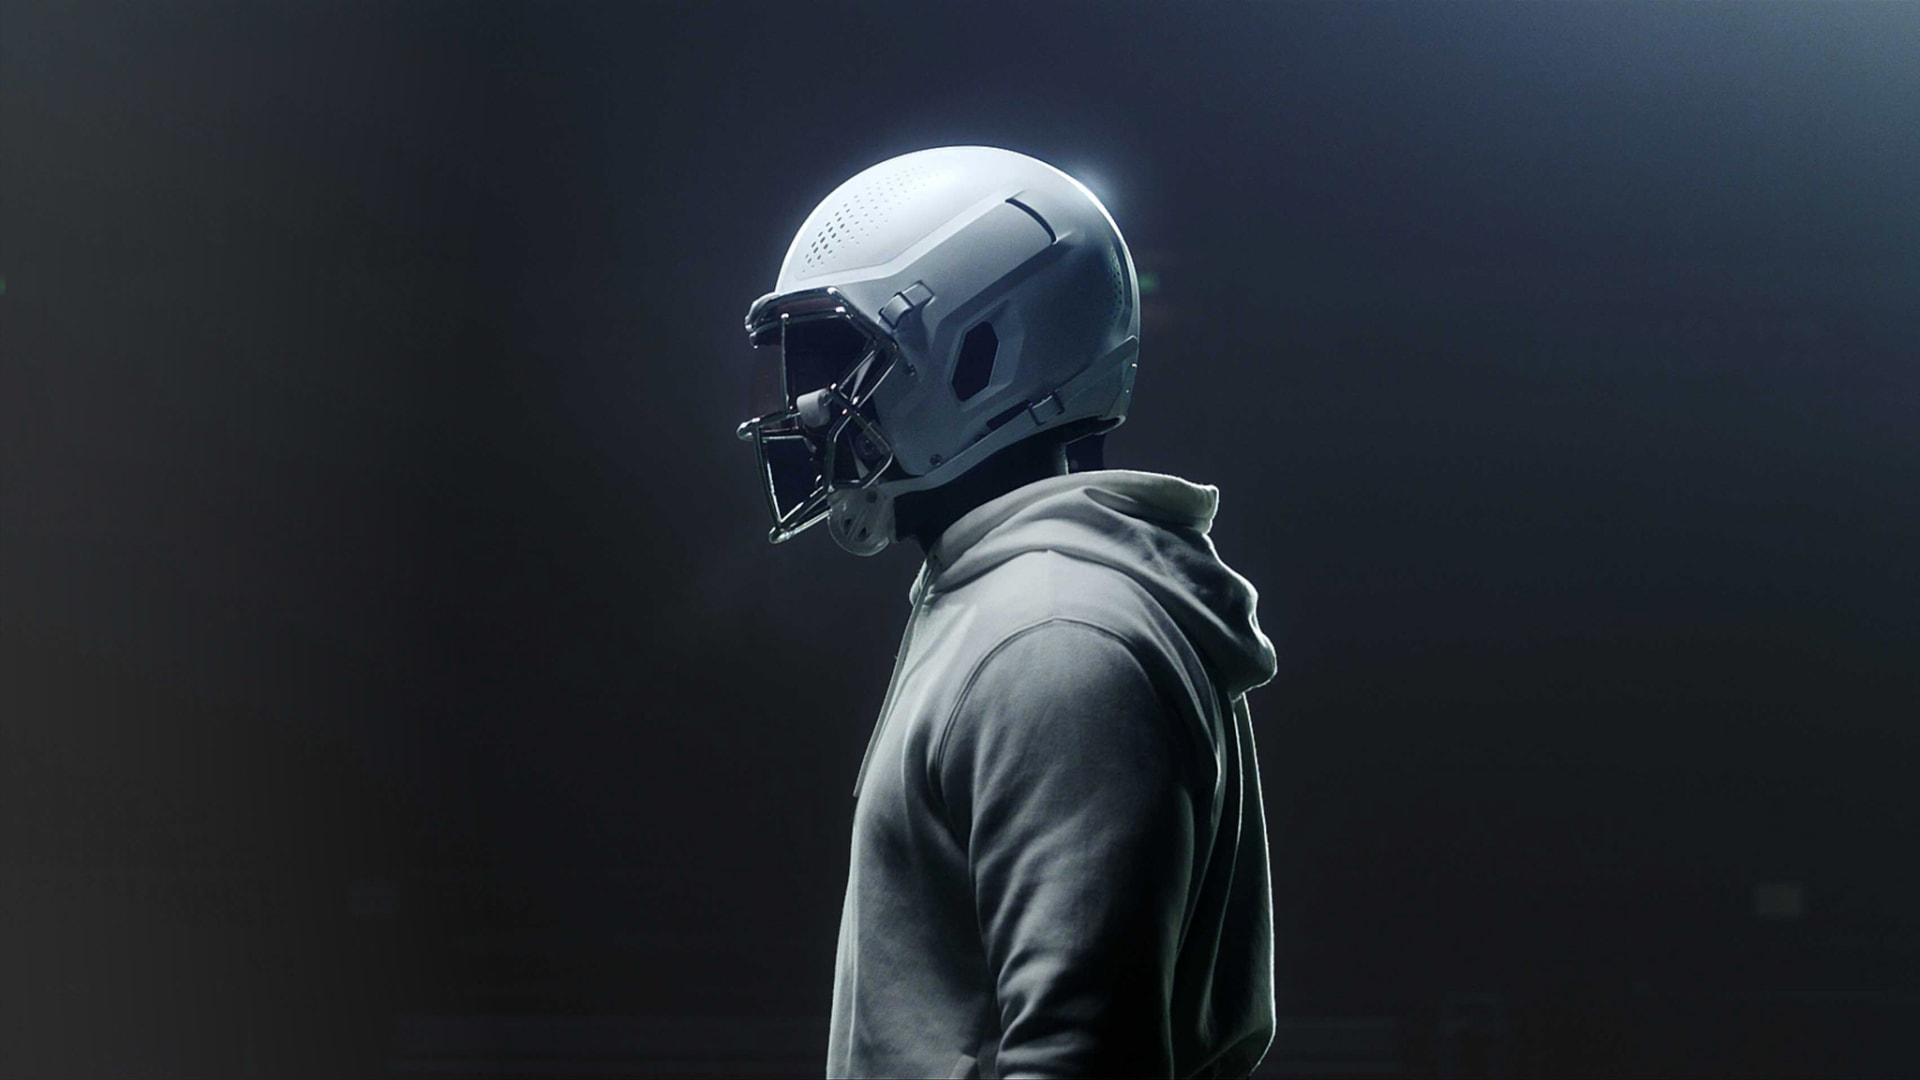 Vicis Ran Out of Cash and Lost Its Founders but Is Still Making Super Bowl-Ready Helmets